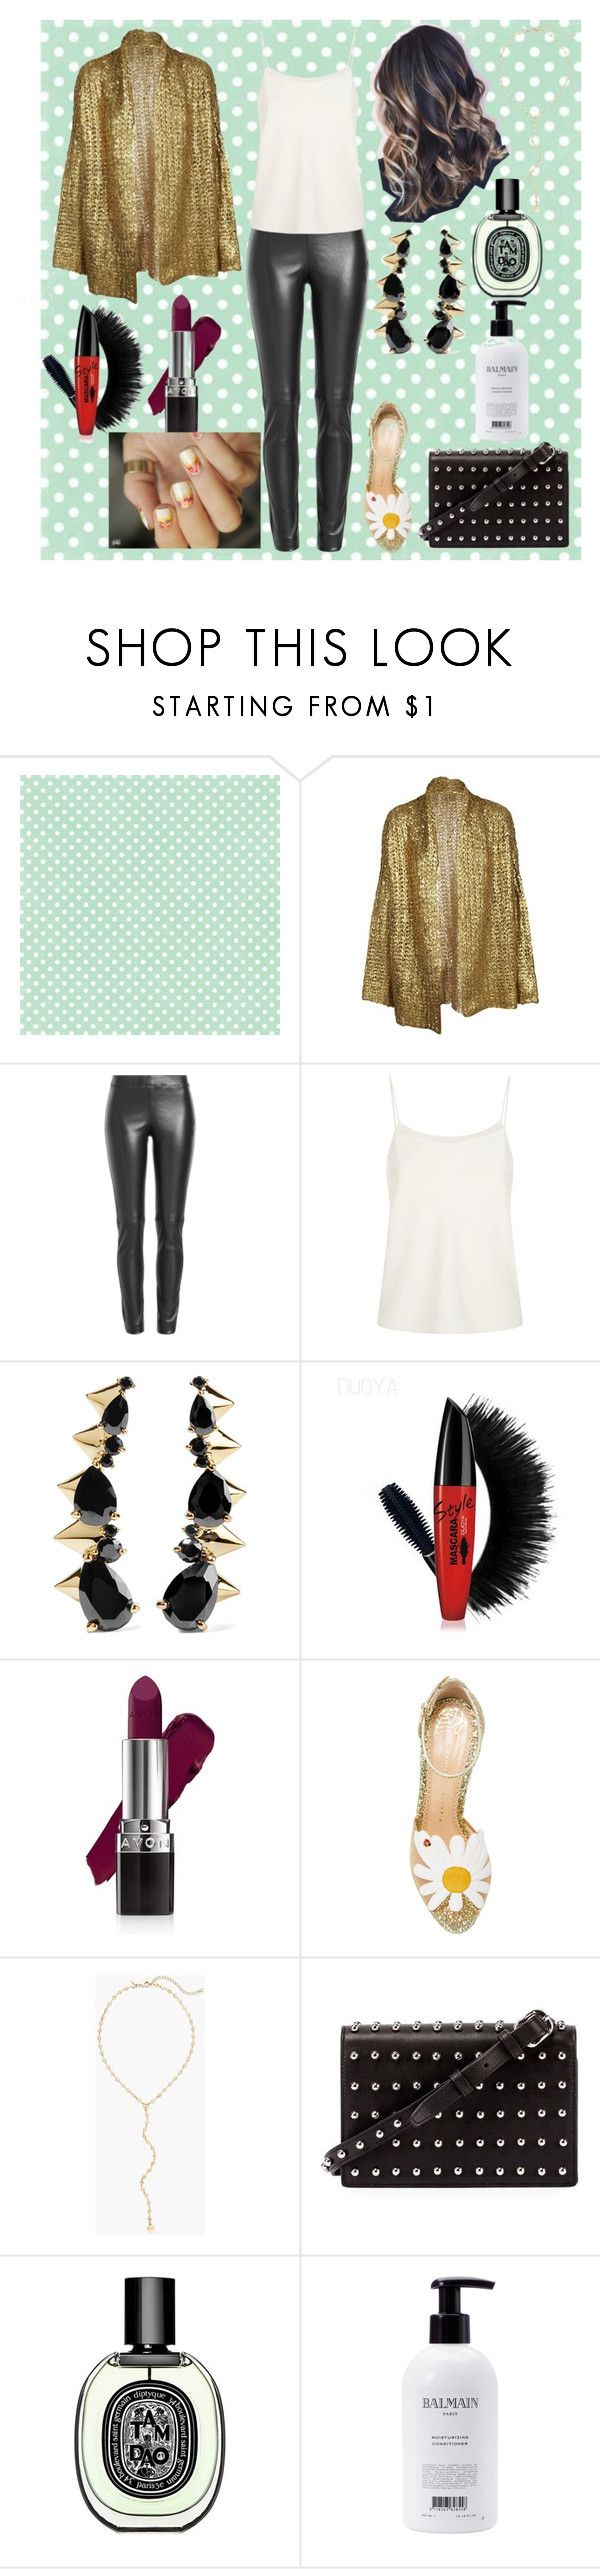 """Untitled #777"" by yasm-ina ❤ liked on Polyvore featuring CO, (nude), Joseph, The Row, Noir Jewelry, Avon, Charlotte Olympia, Chico's, Alexander Wang and Diptyque"